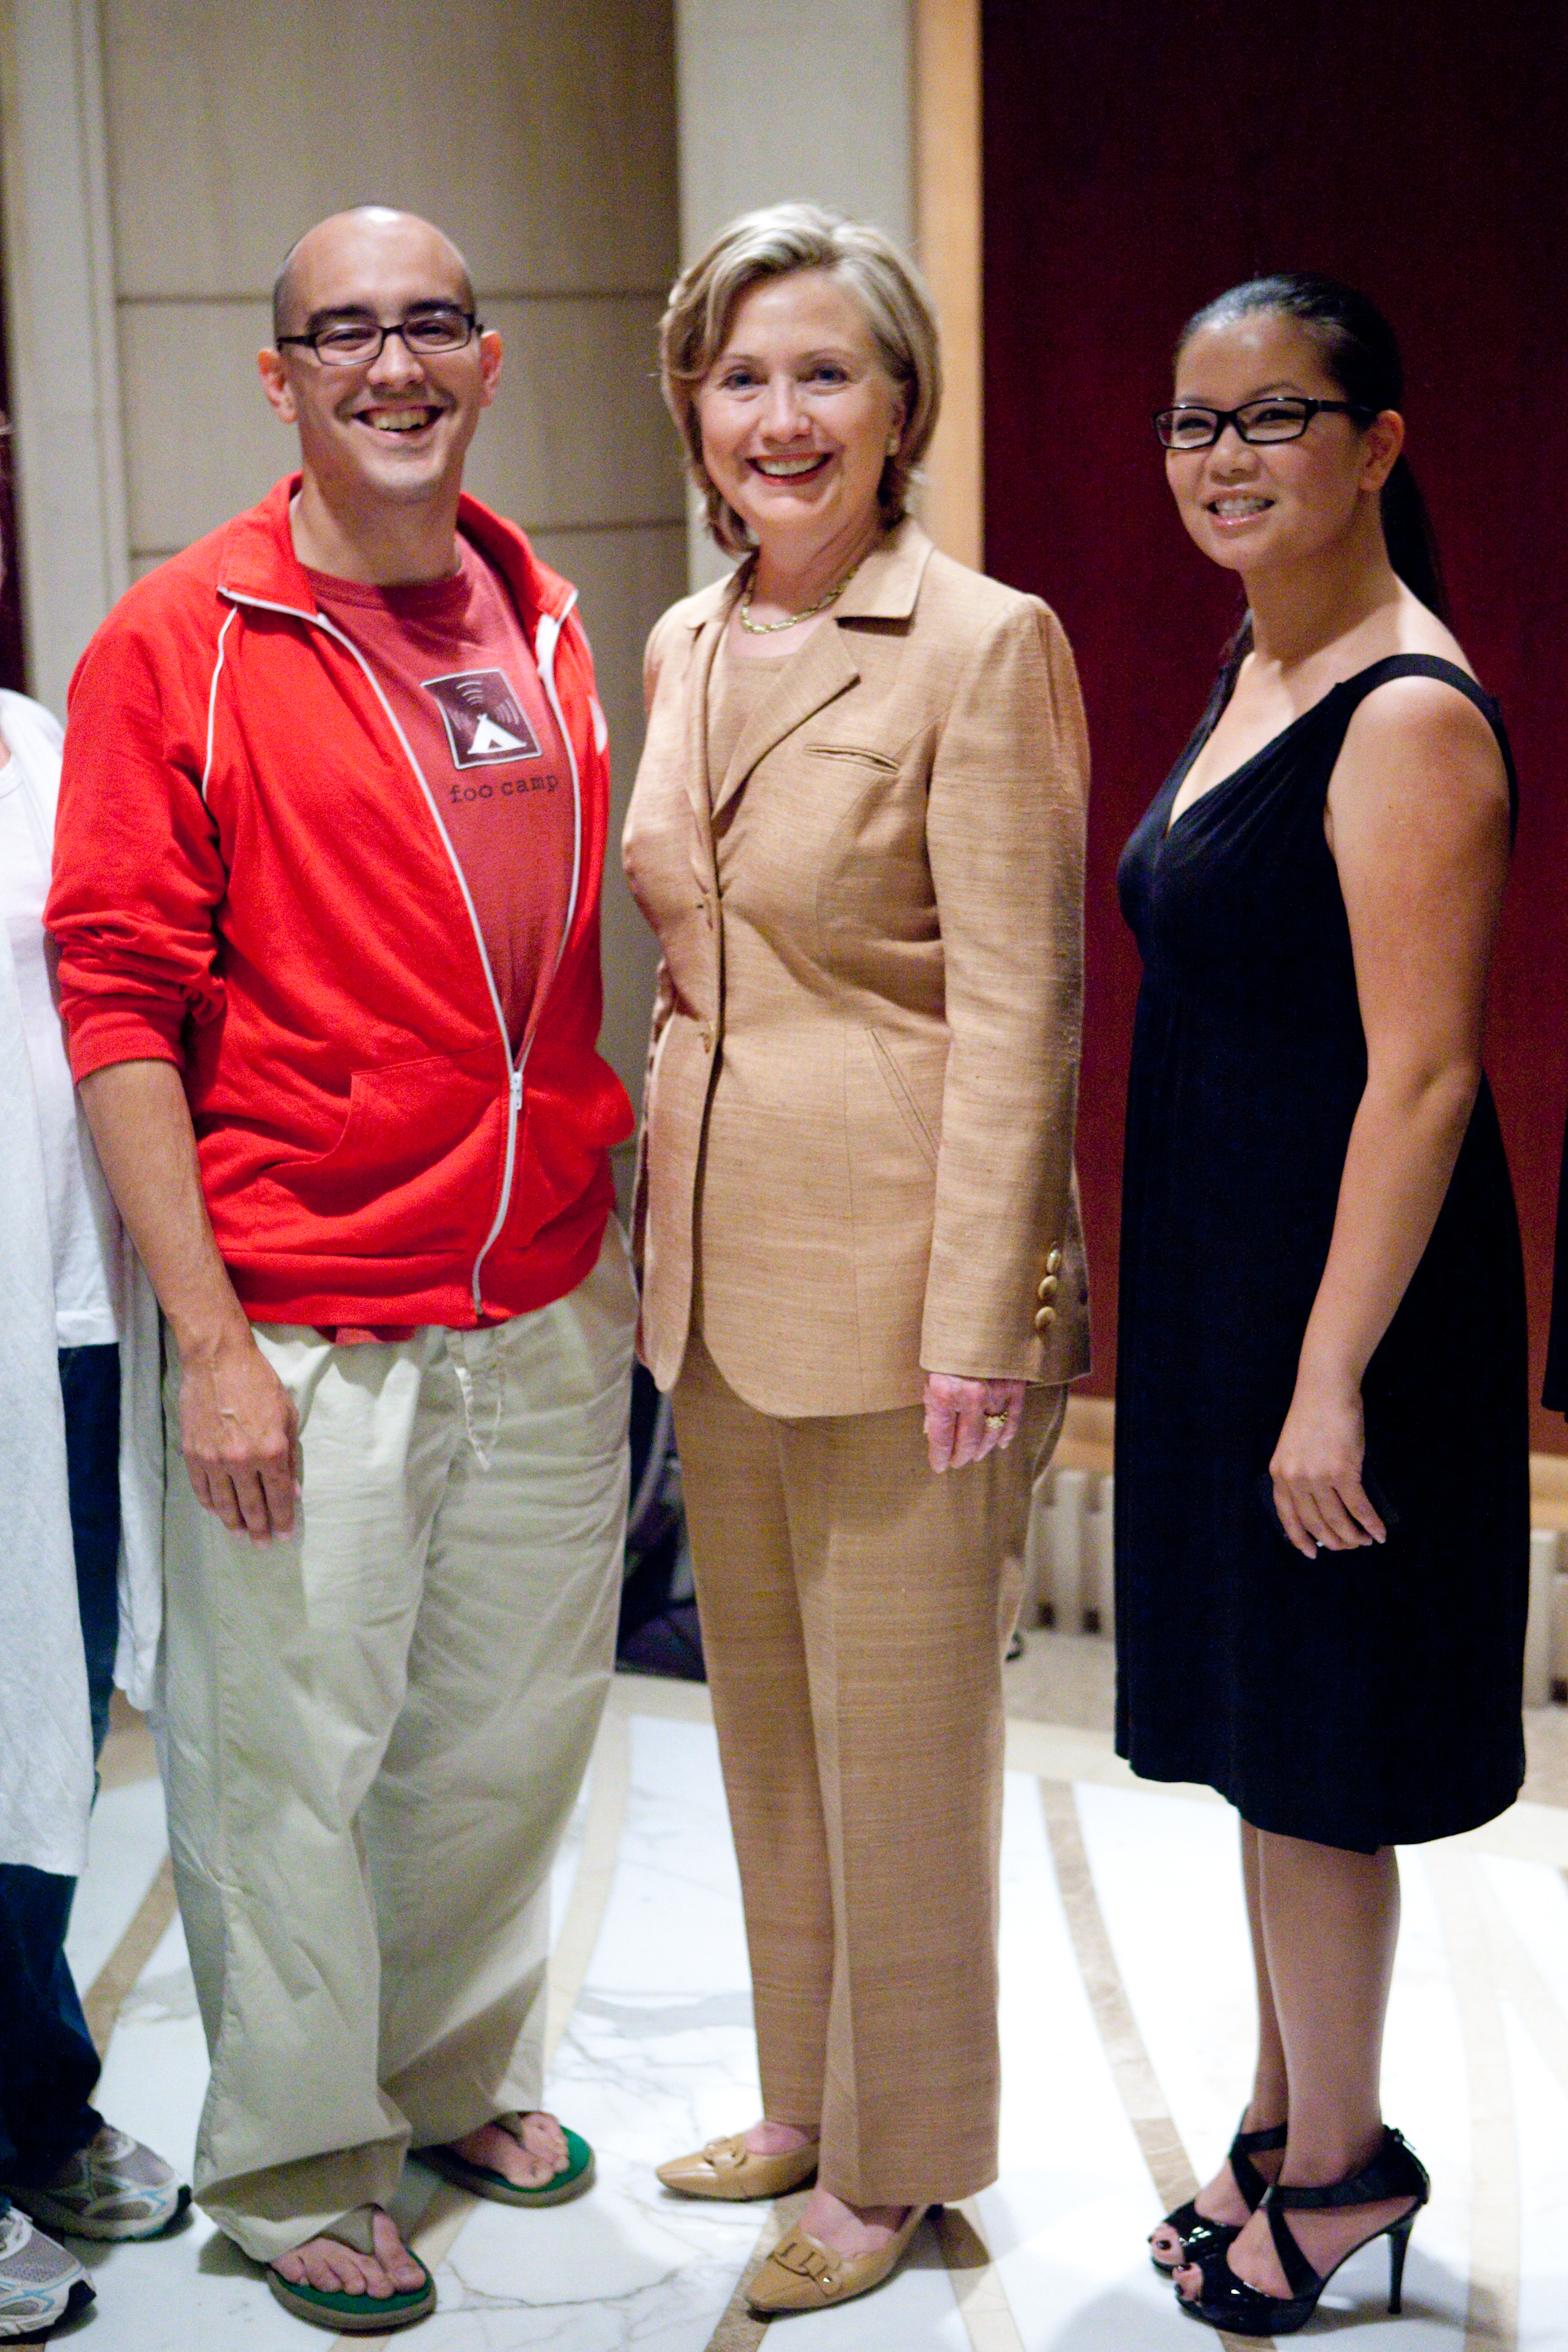 500 Startups' Dave McClure, in flip-flops, with presidential candidate Hillary Clinton and Christine Lu, a 500 Startups entrepreneur.